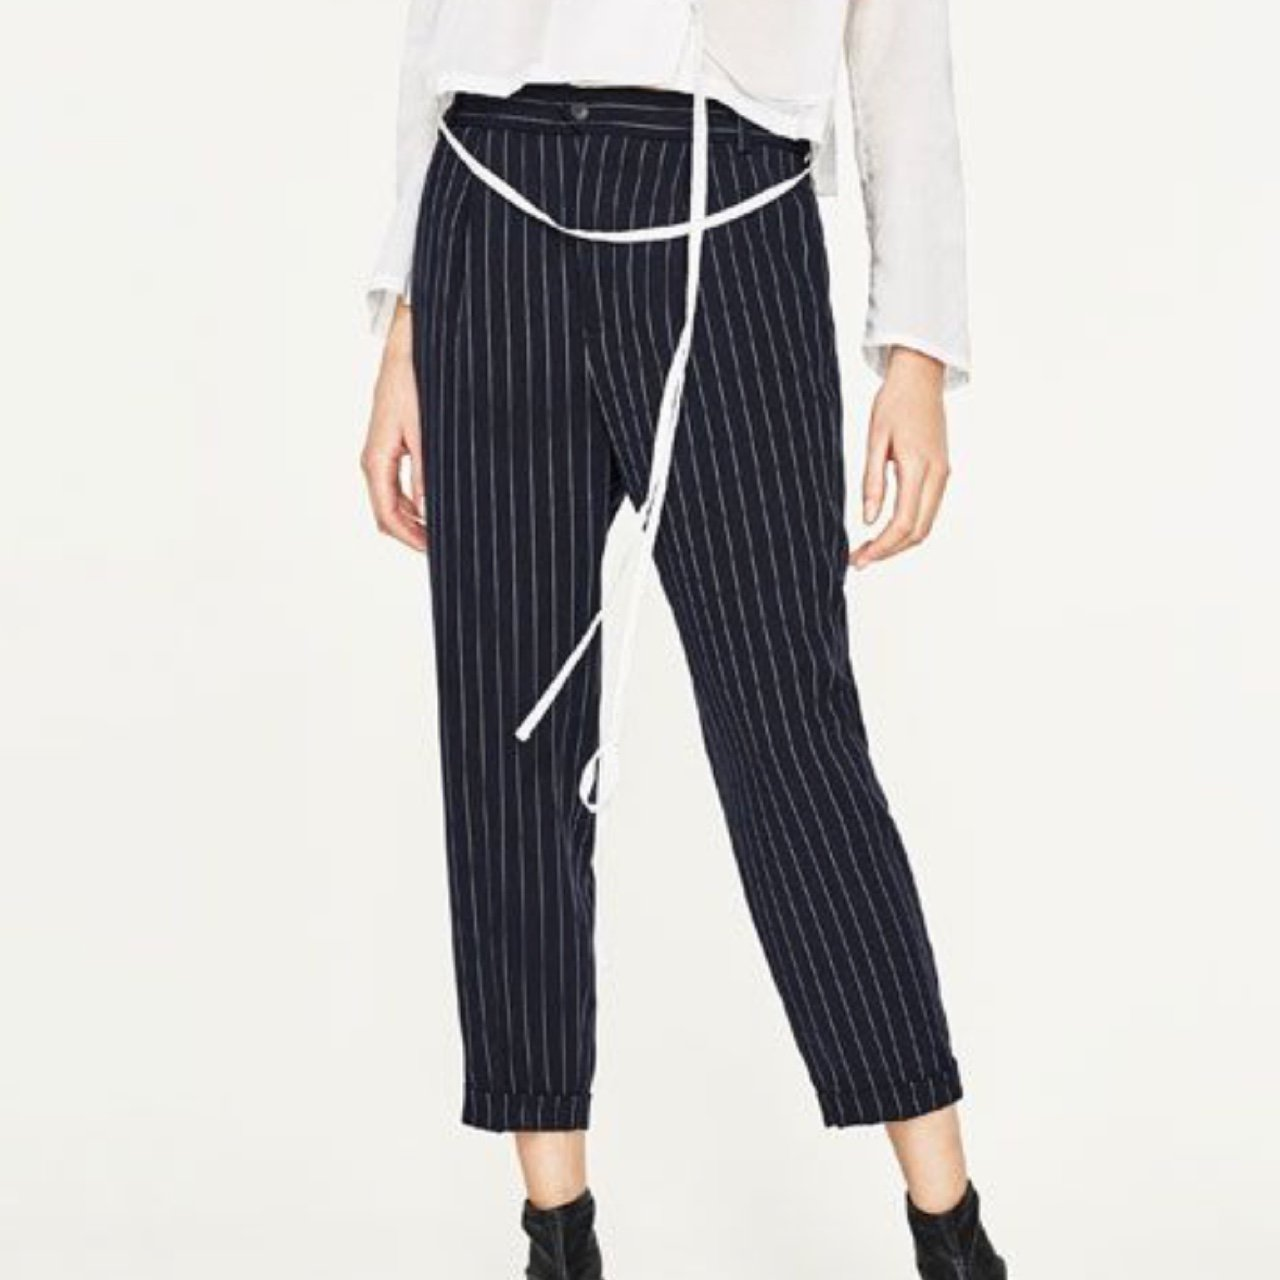 5300ec93 Zara S pinstripe trousers with elastic waist, perfect for - - Depop